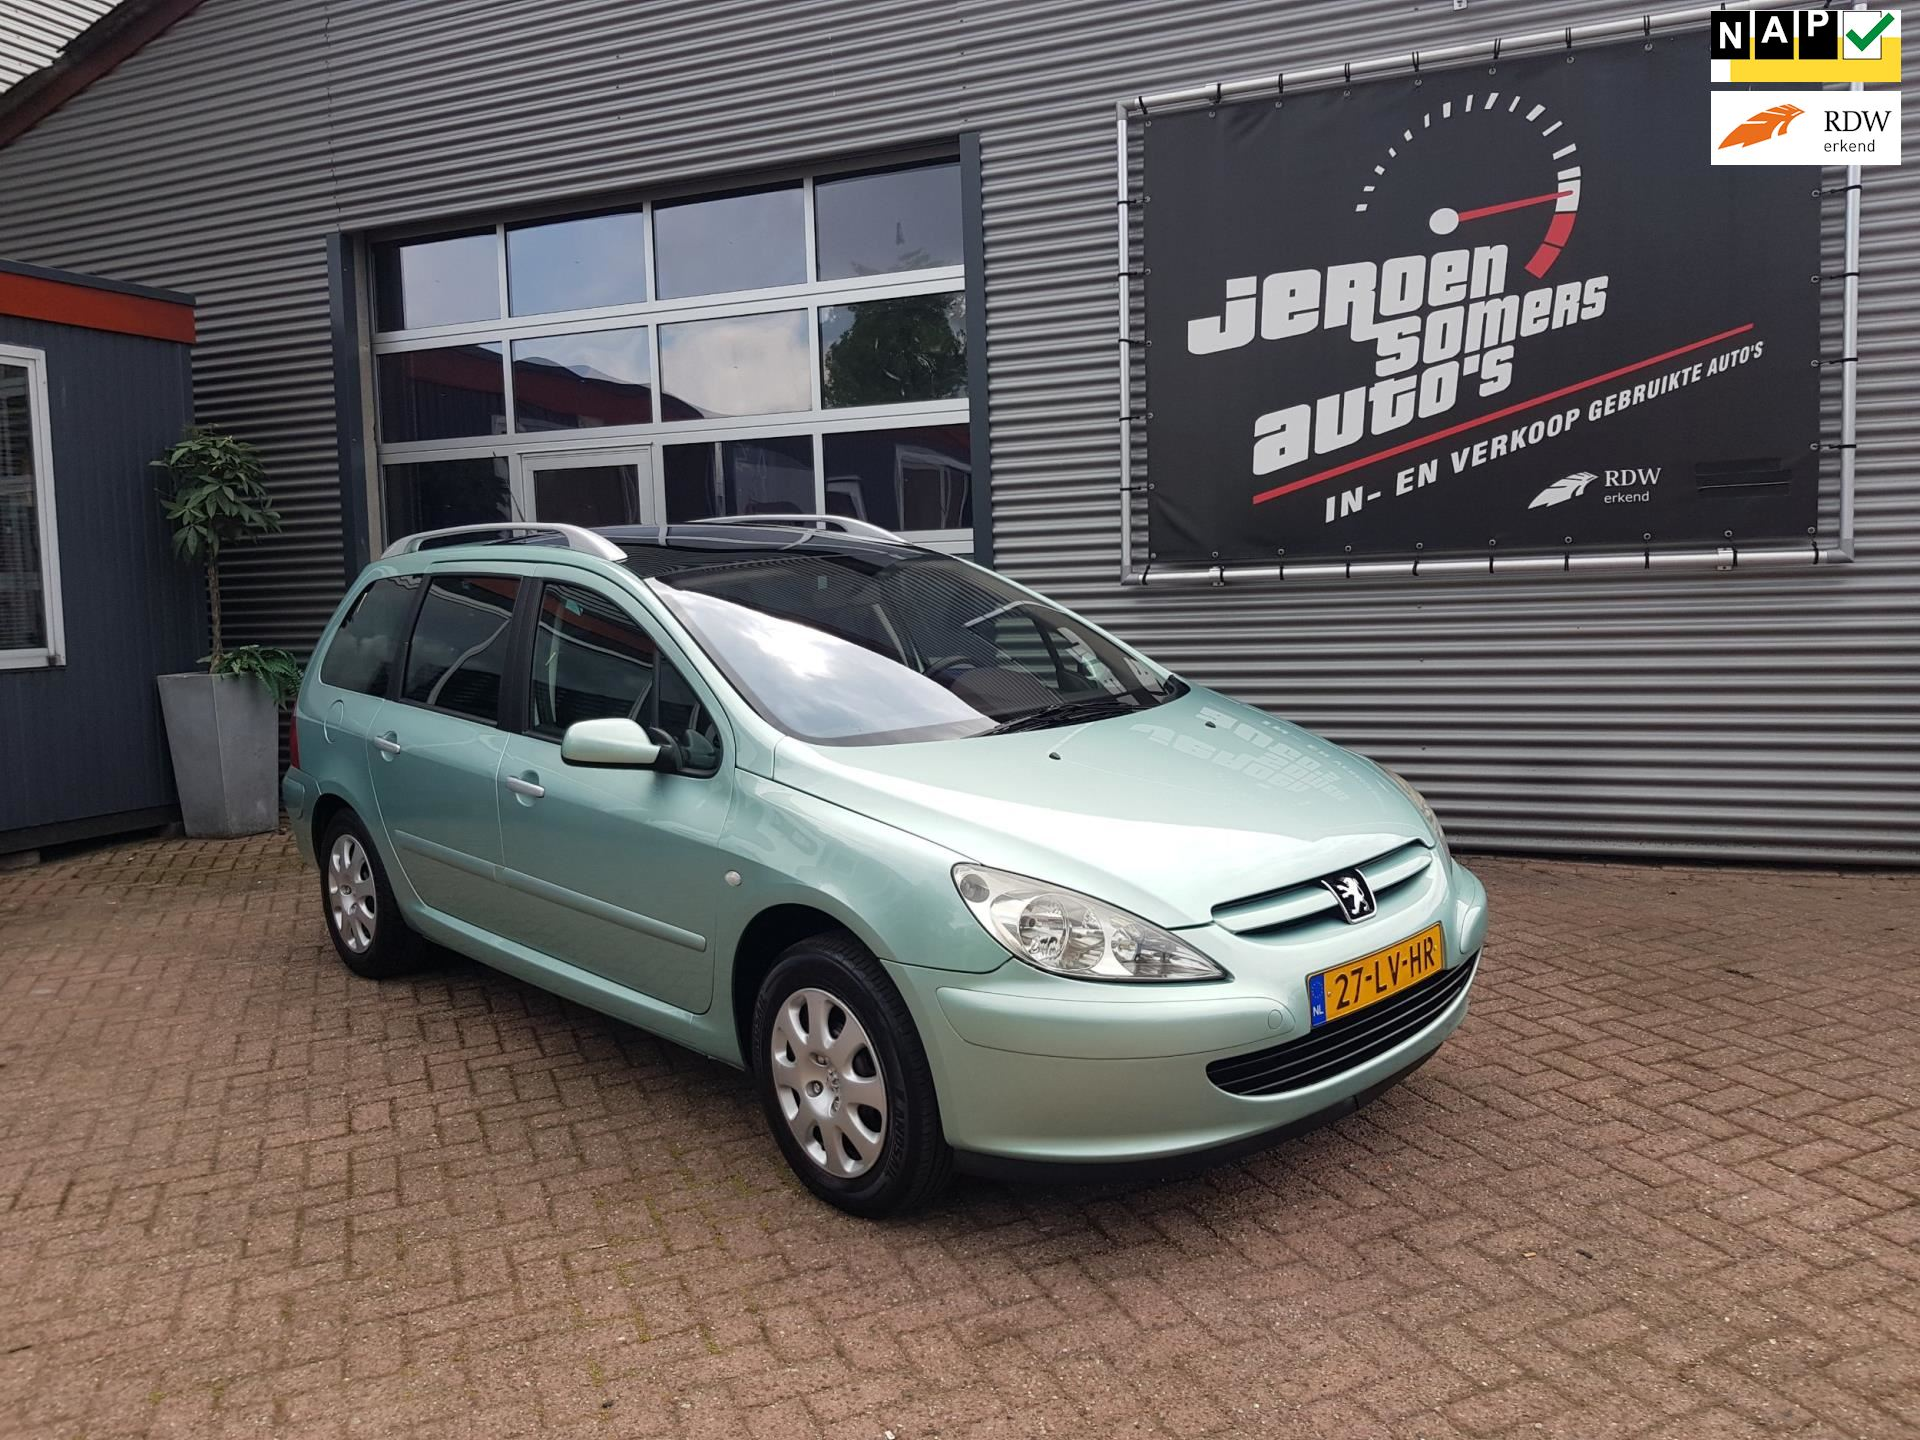 Peugeot 307 SW occasion - Jeroen Somers Auto´s